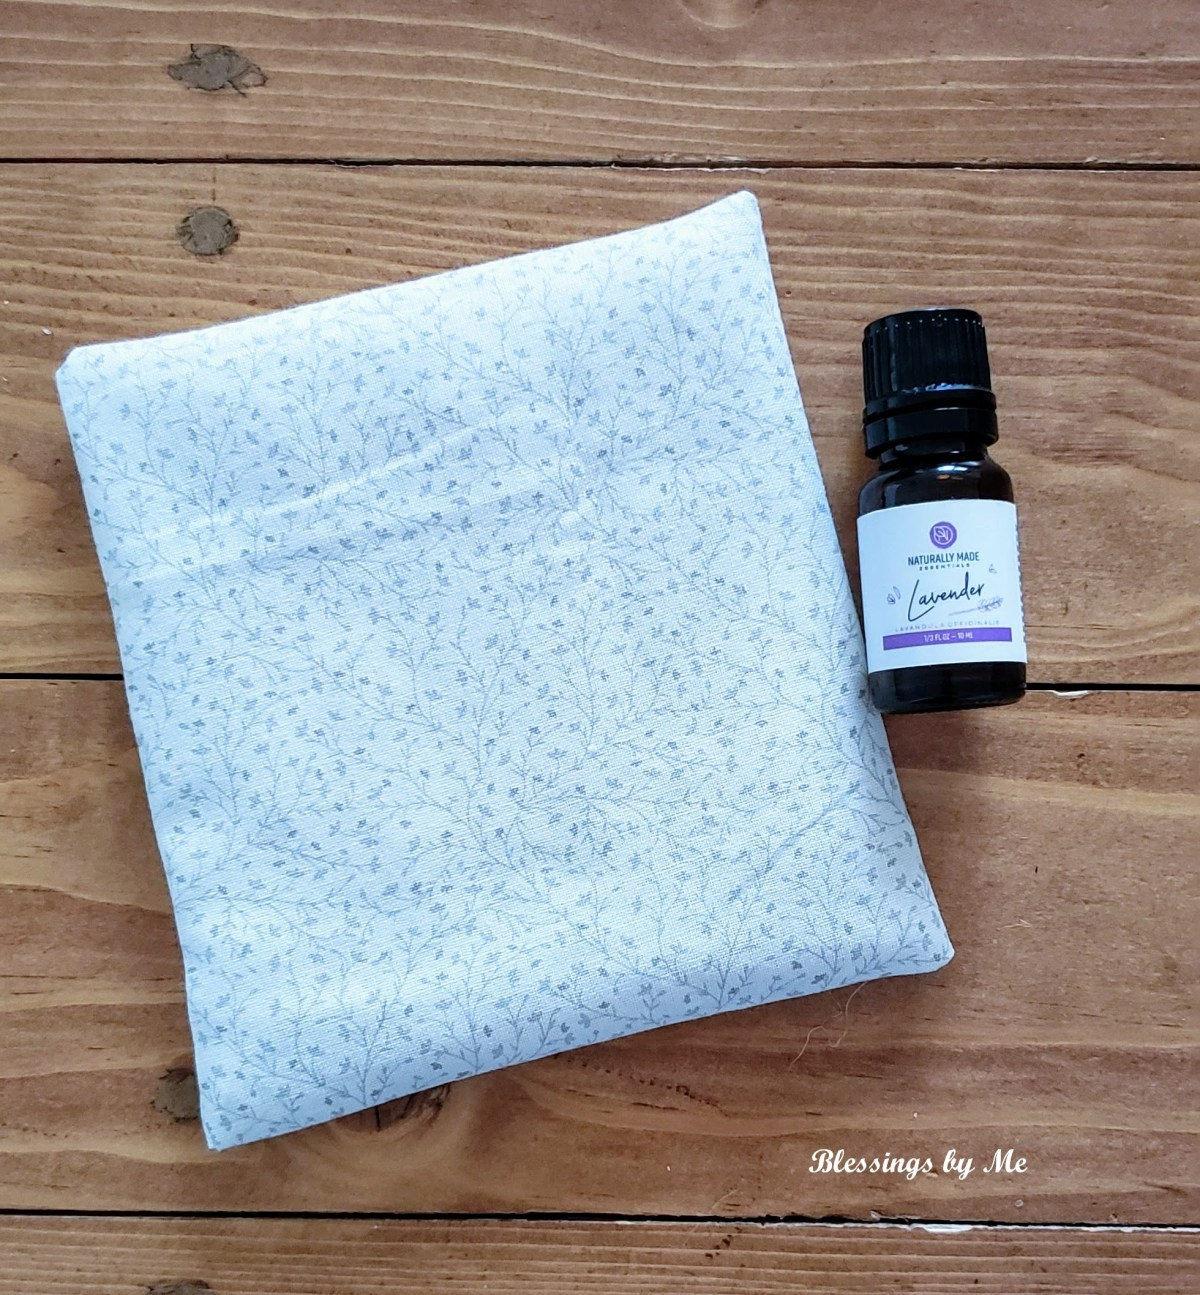 This DIY no sew lavender scented drawer sachet is perfect for freshening up drawers. Also perfect for linen closets, gym bags, vehicles, and more!